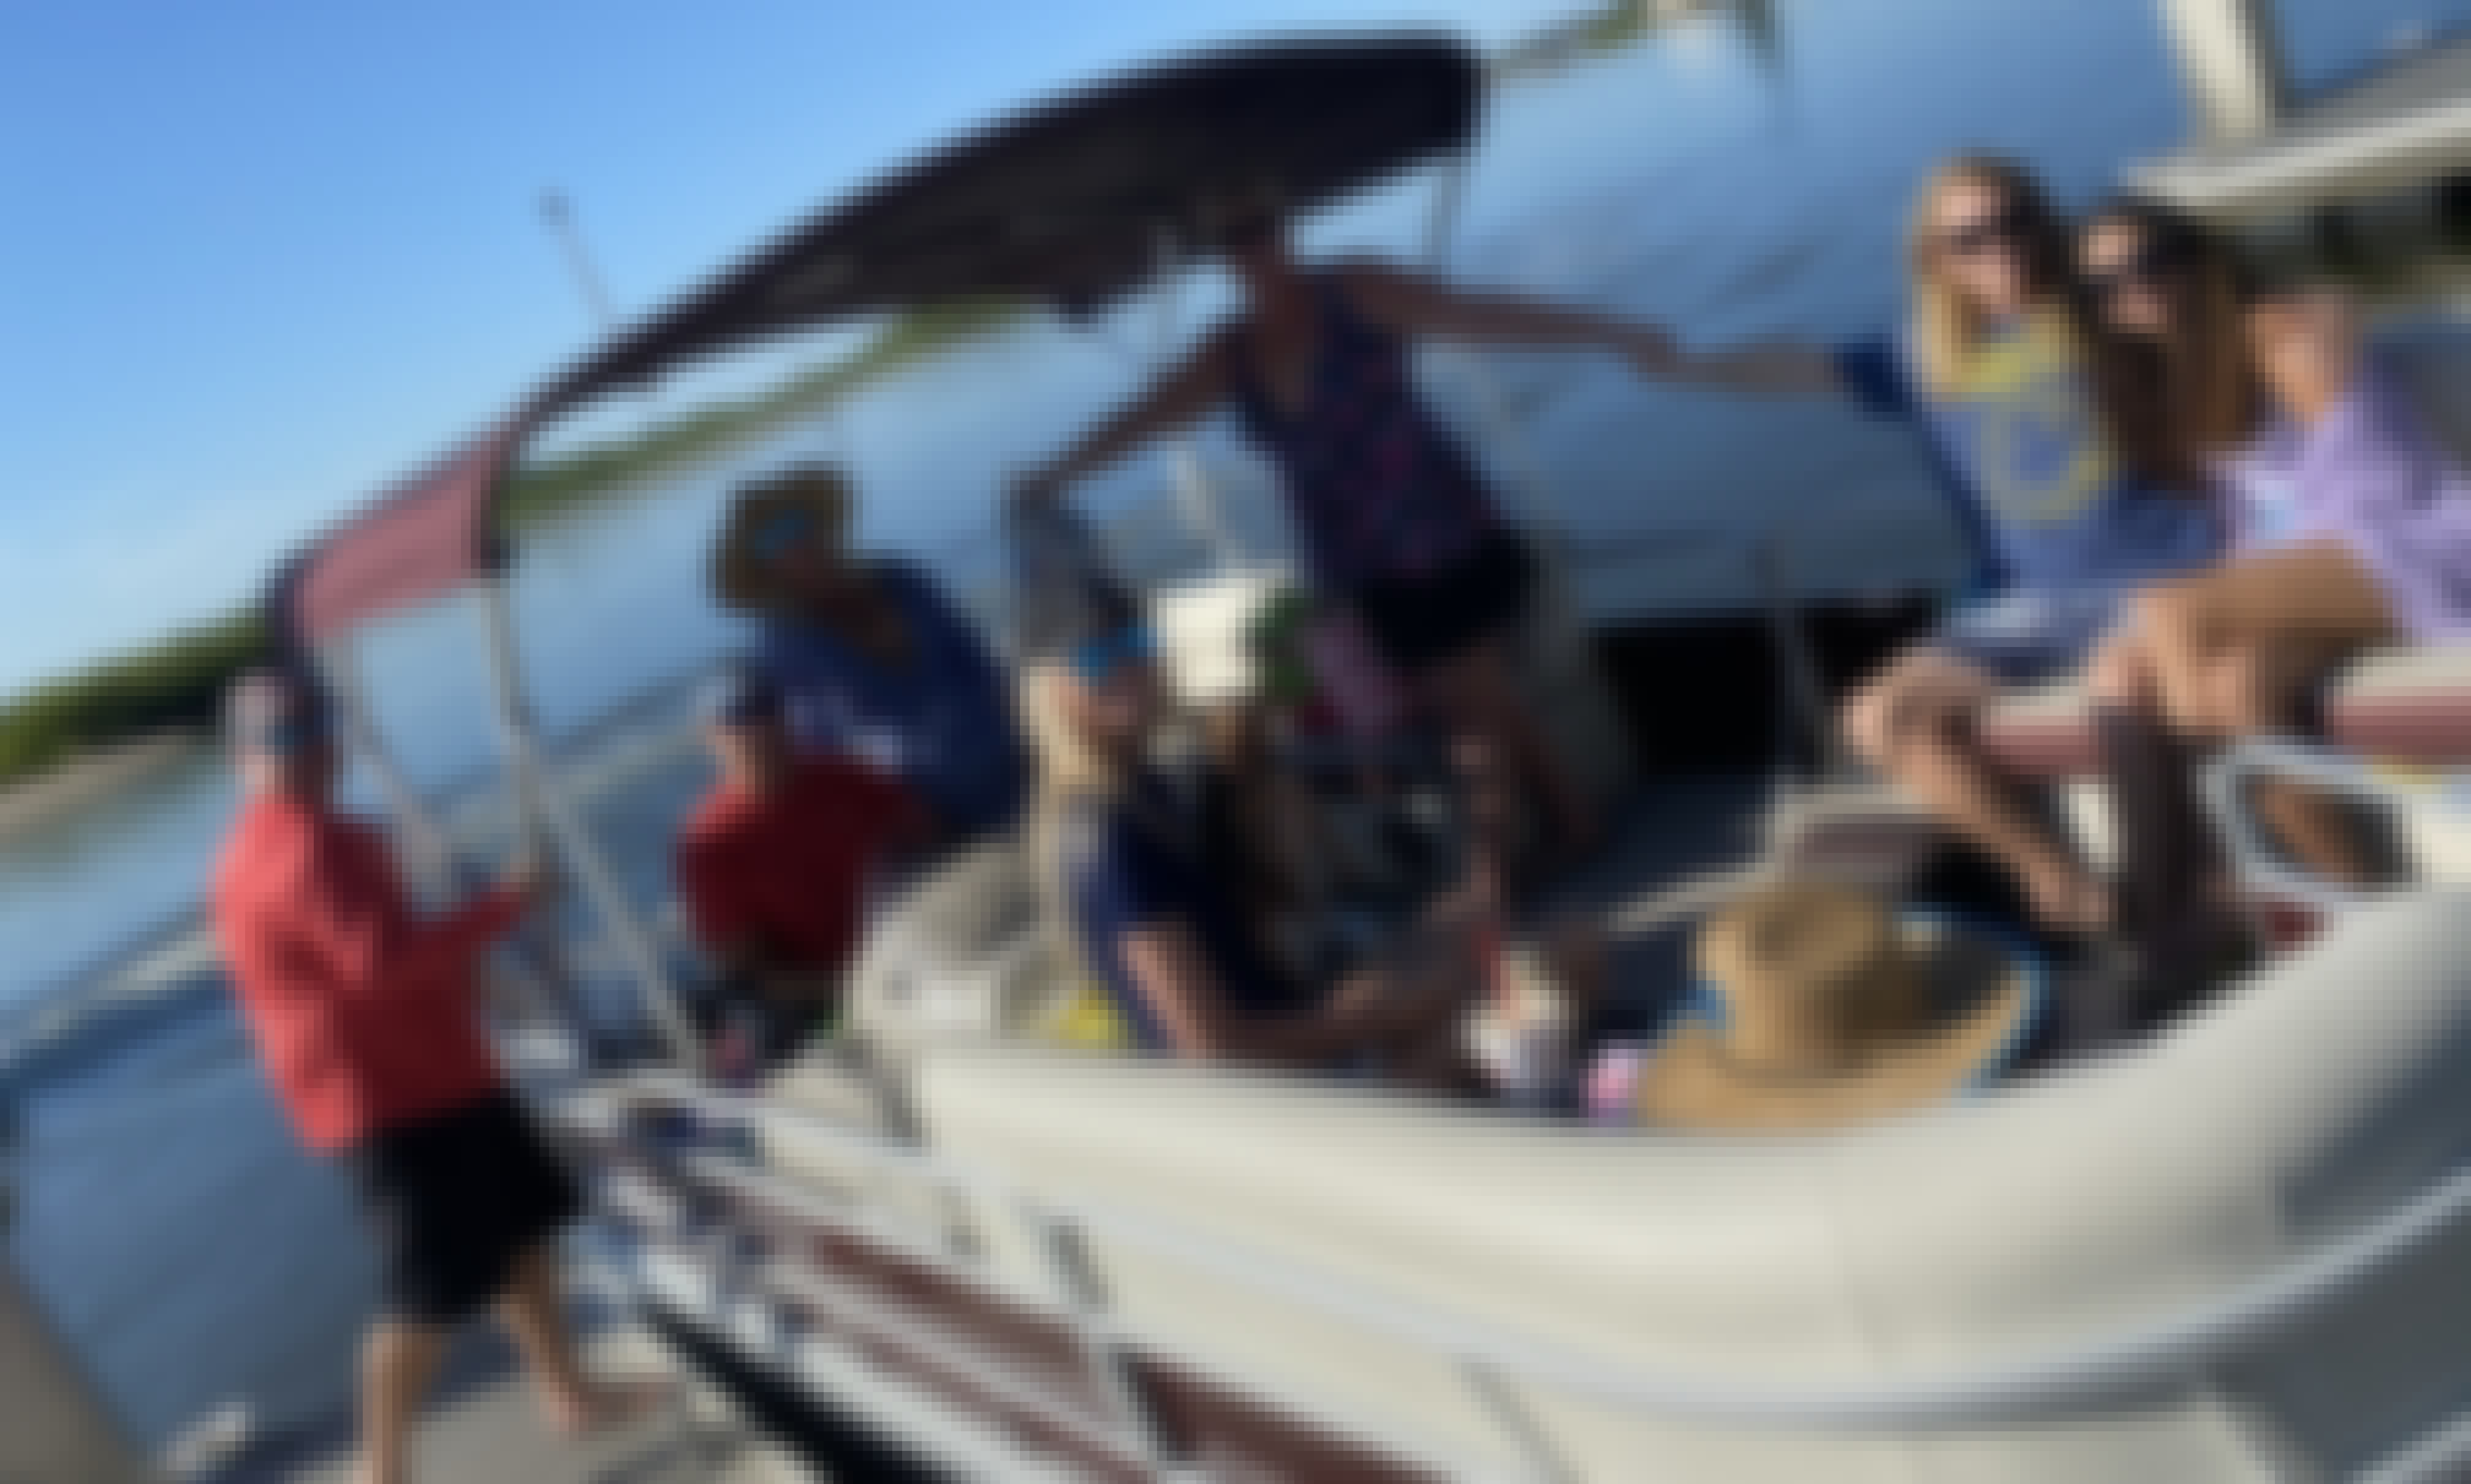 18 ft Pontoon Boat for up to 8 Persons in Daytona Beach